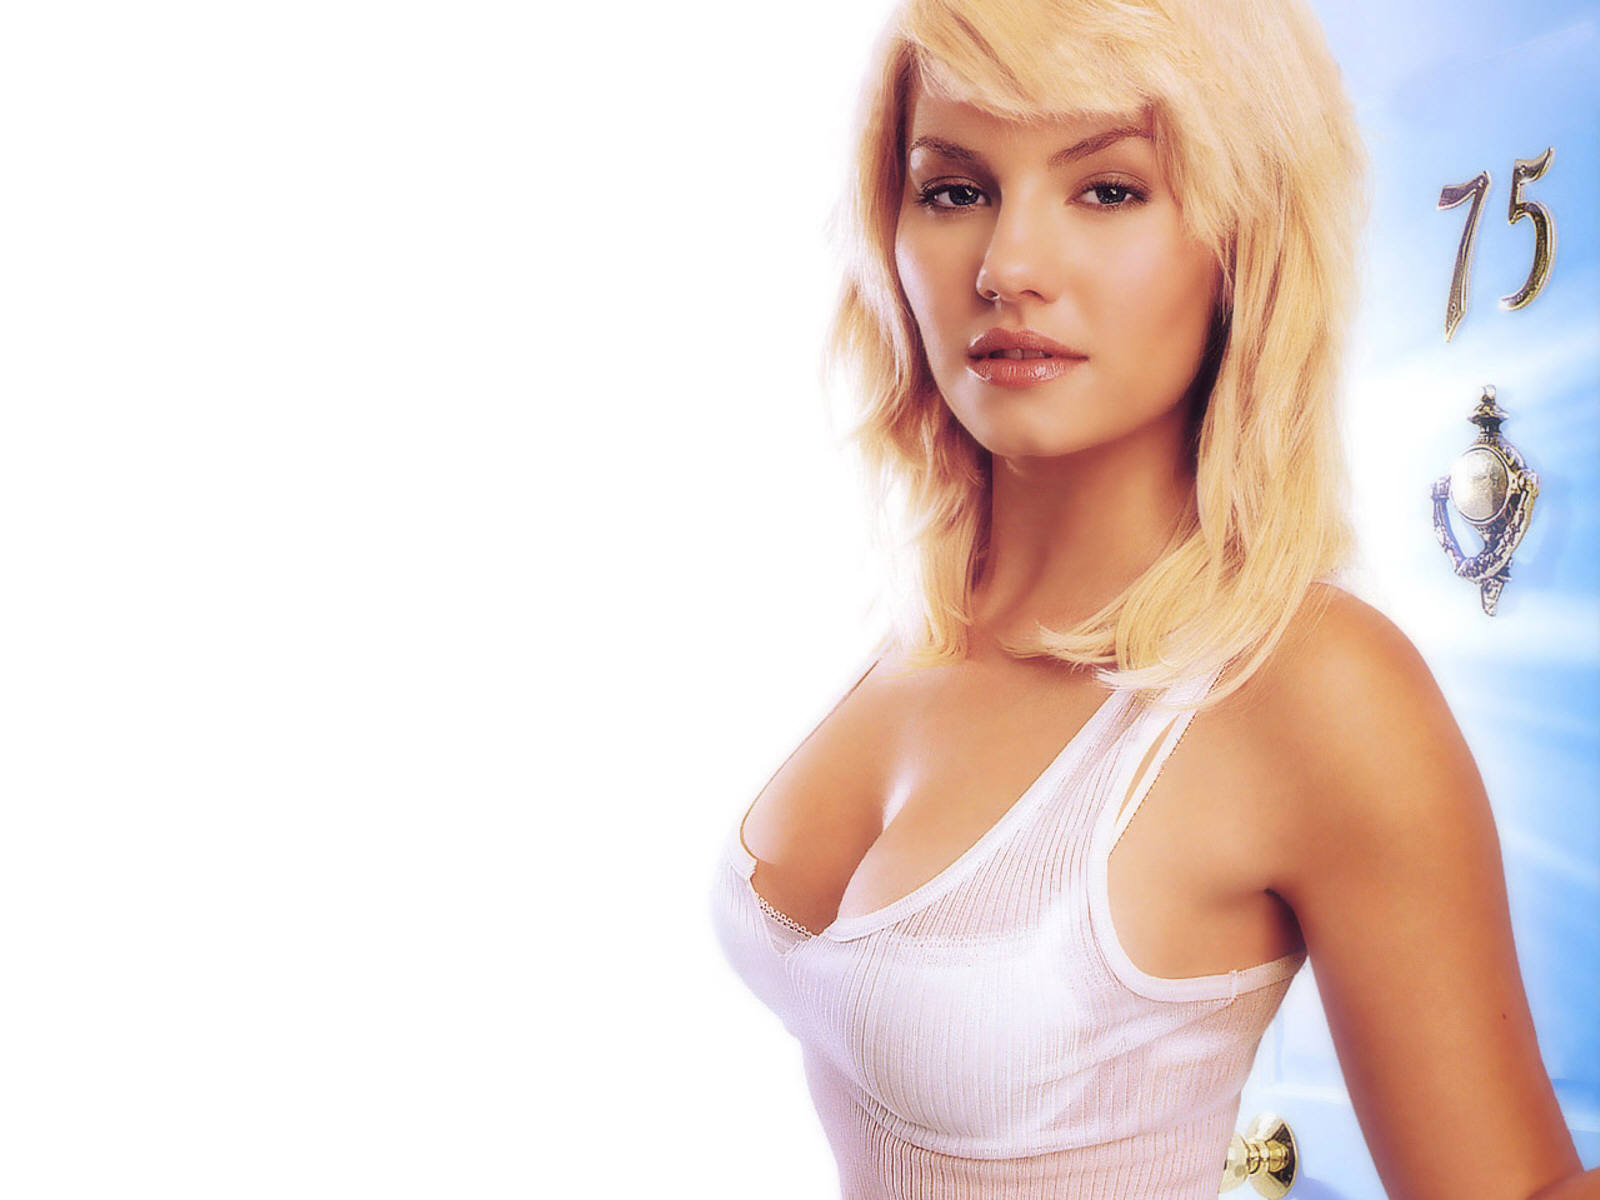 Elisha Cuthbert Hot and Sexy Wallpapers #1